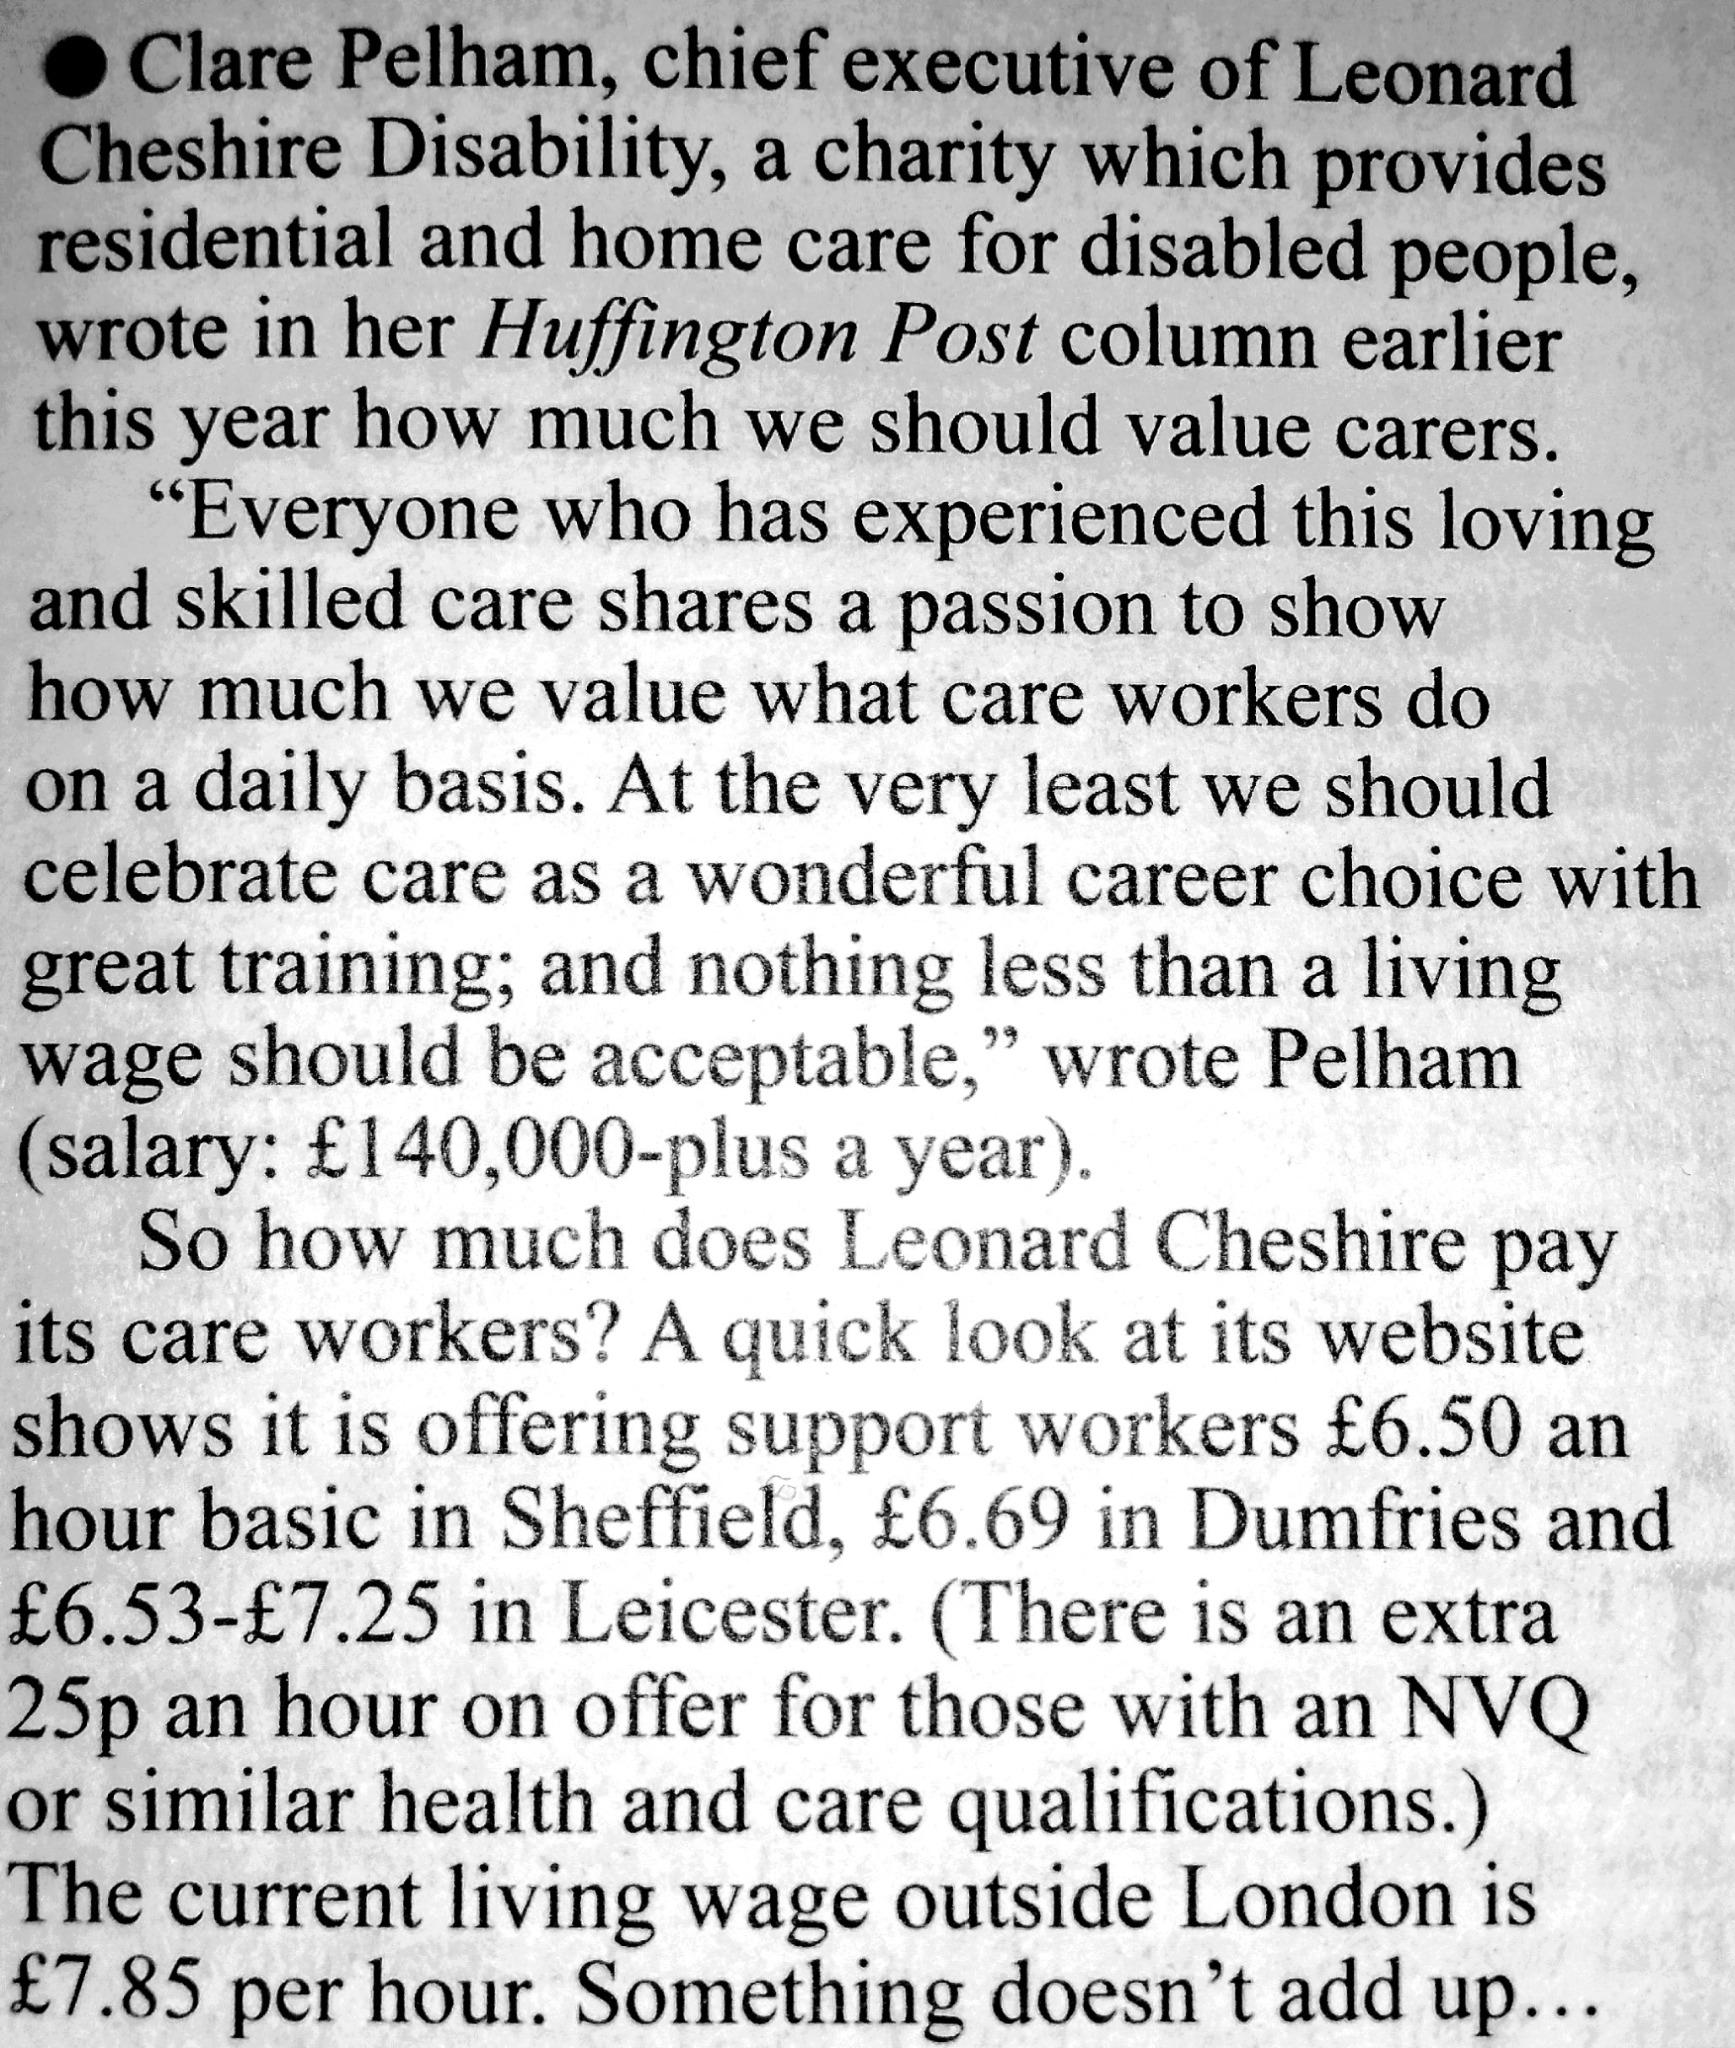 Hypocrisy of @ClarePelham and @LeonardCheshire's failure to pay the Living Wage in @PrivateEyeNews @BeresfordPeter http://t.co/OU73i0y00M